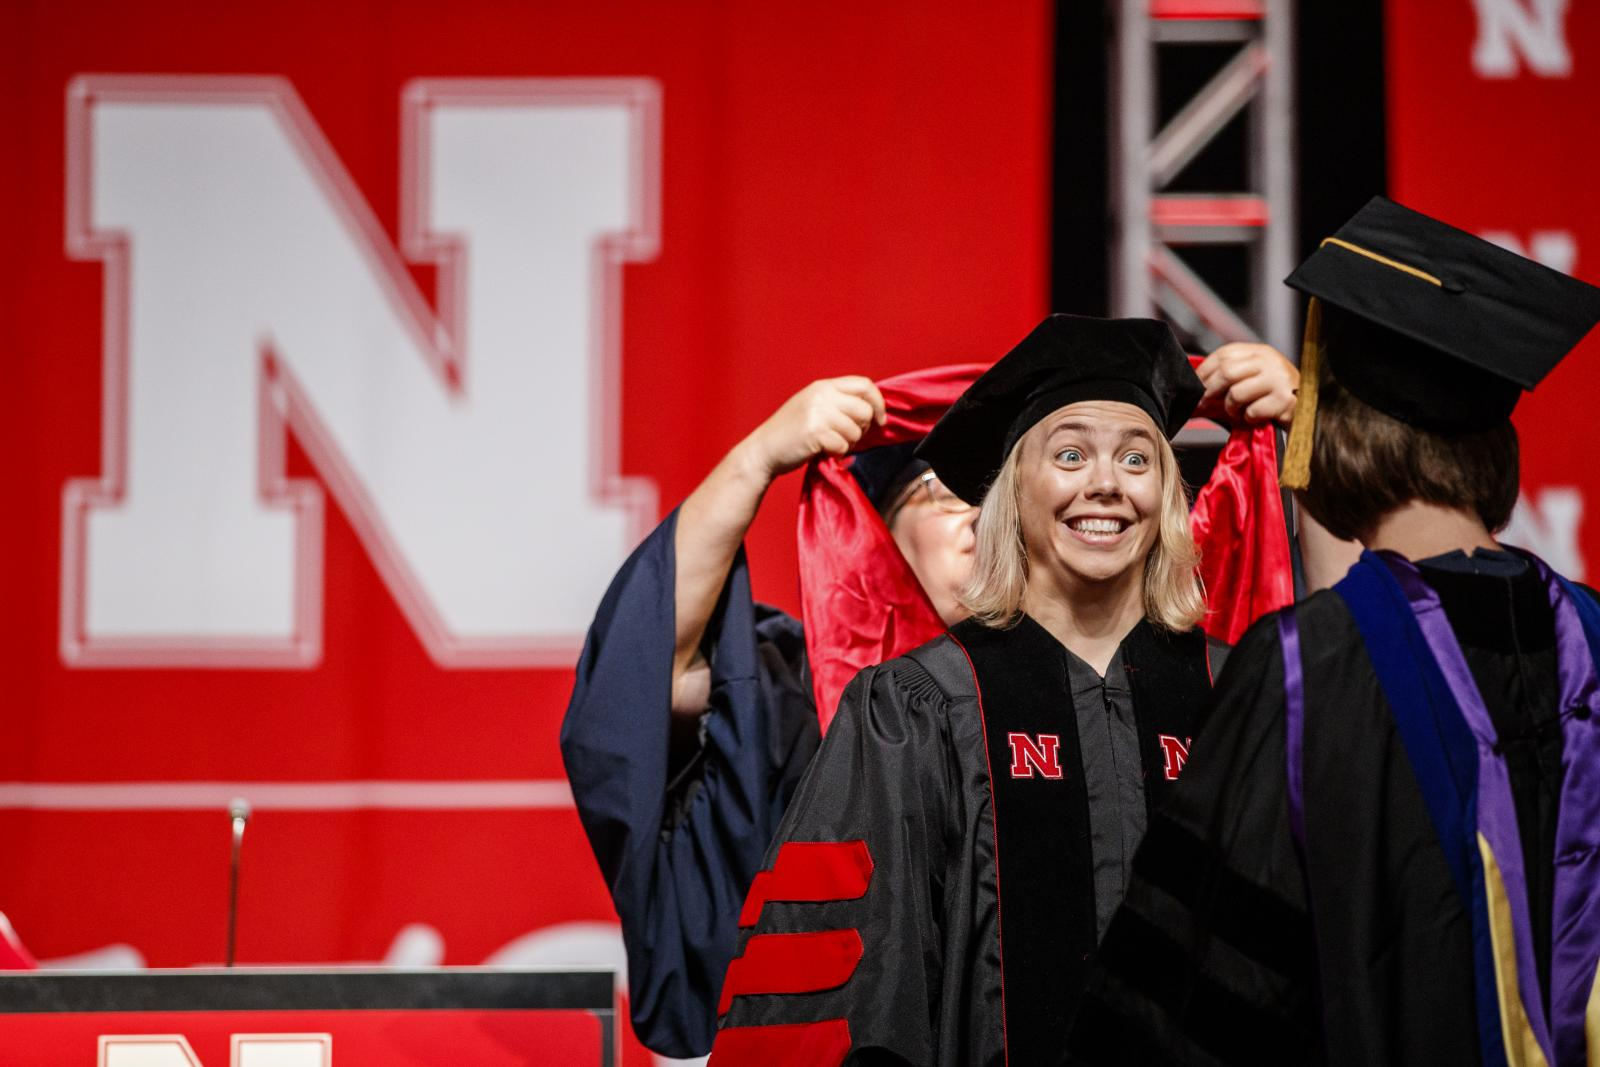 Nebraska graduate receives her doctoral hood.